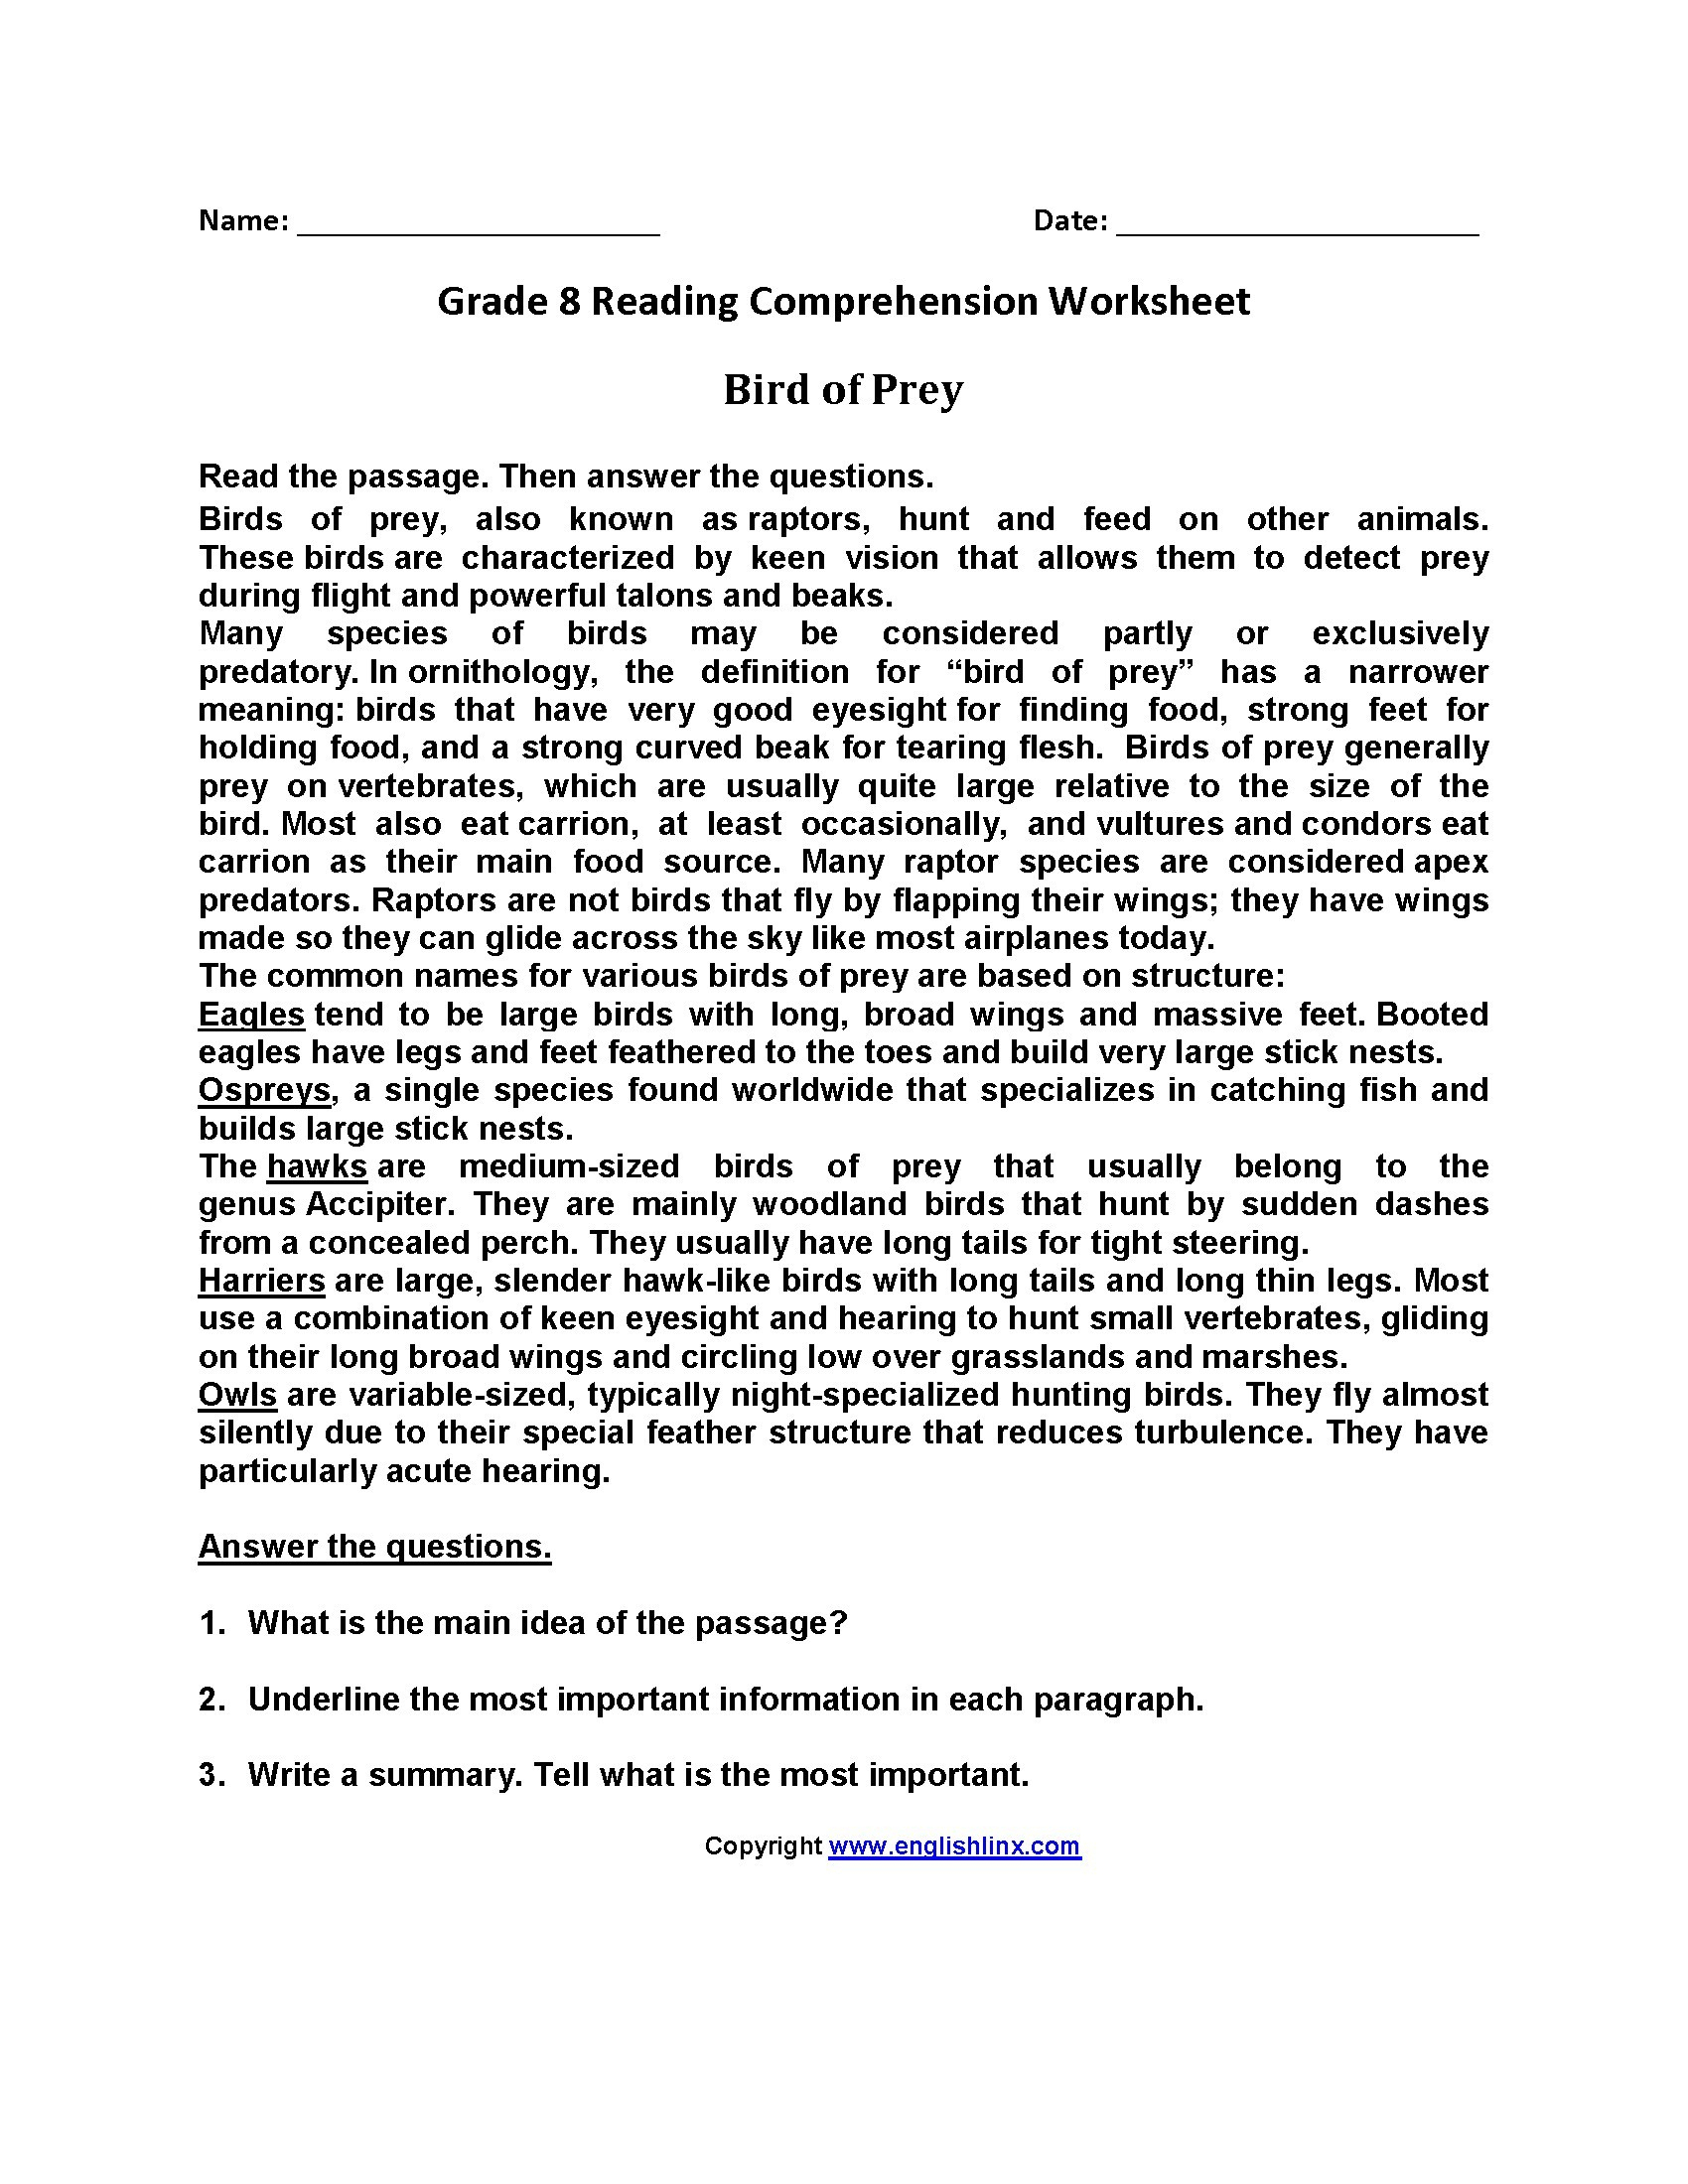 Free Printable Reading Comprehension Worksheets 3Rd Grade For - Free Printable Reading Comprehension Worksheets For 3Rd Grade